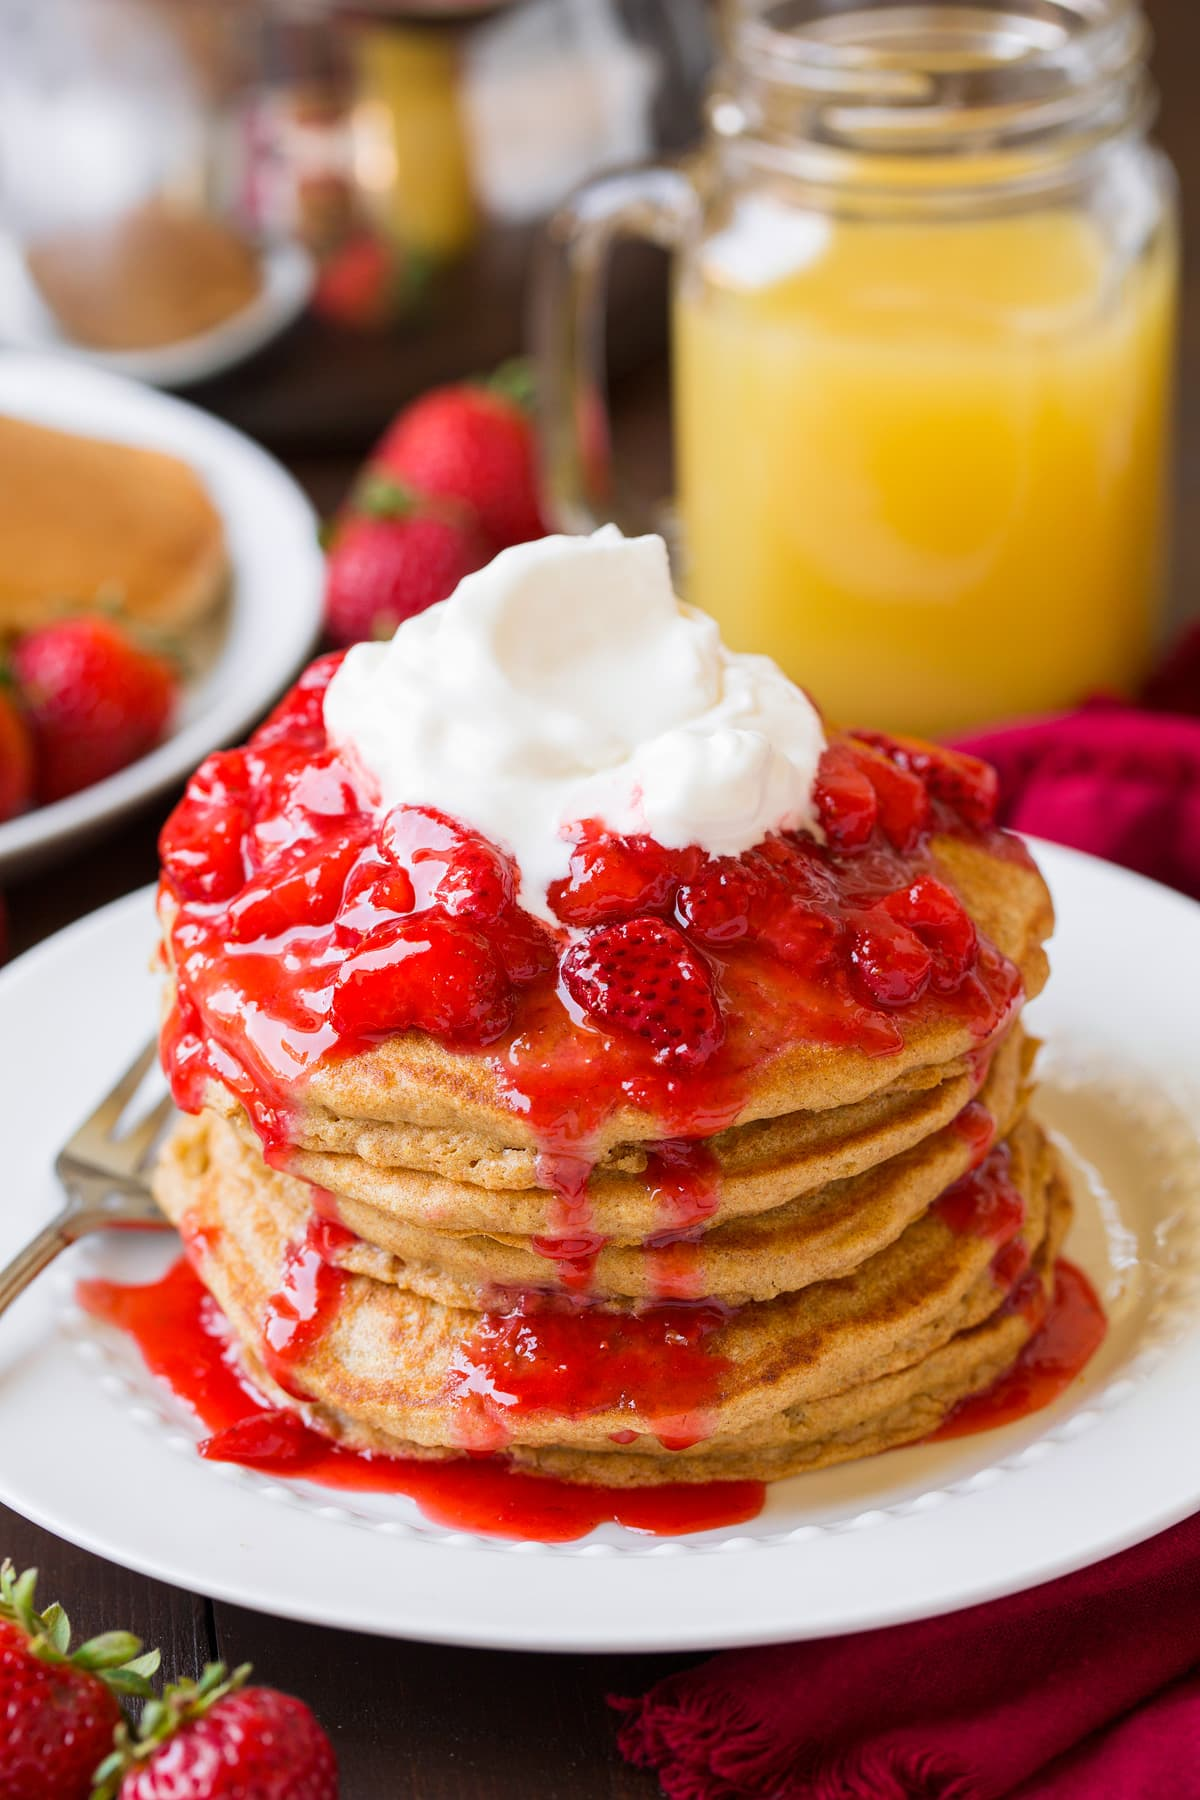 Whole Wheat Pancakes topped with strawberry syrup and whipped cream.